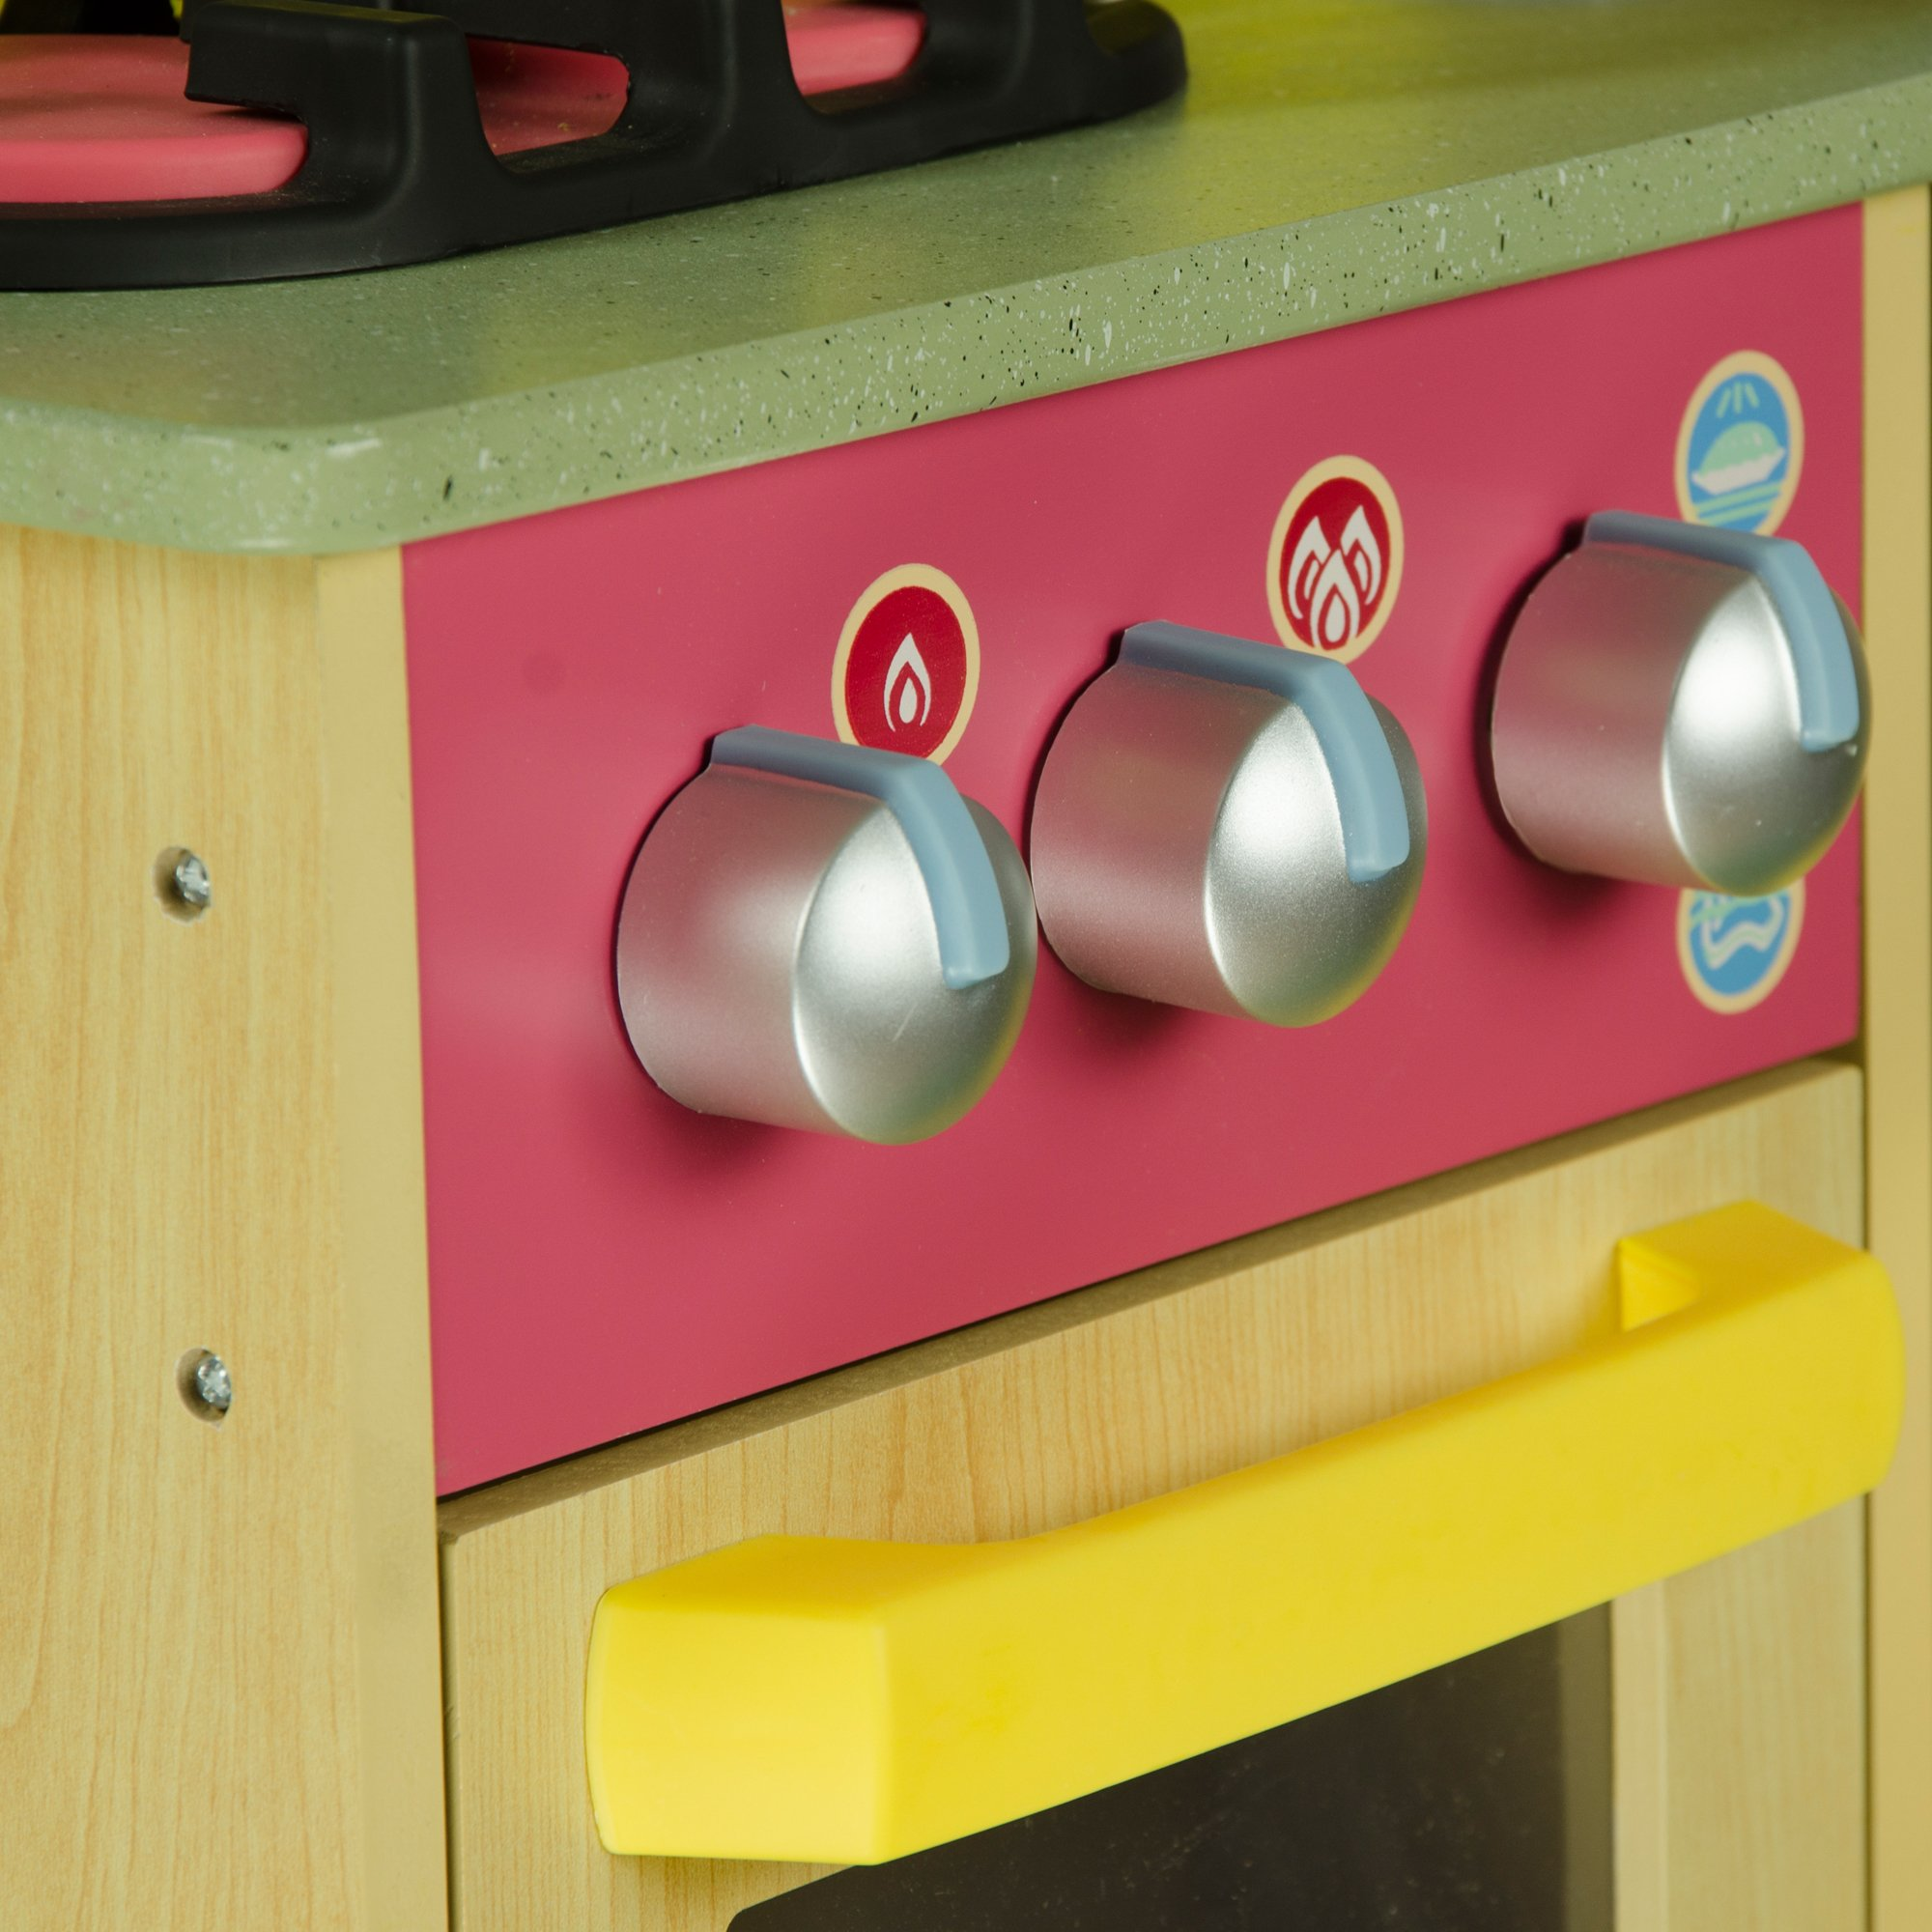 Teamson Kids - Little Chef Florence Classic Kids Play Kitchen | Toddler Pretend Play Set with Accessories - Wood Grain by Teamson Kids (Image #8)